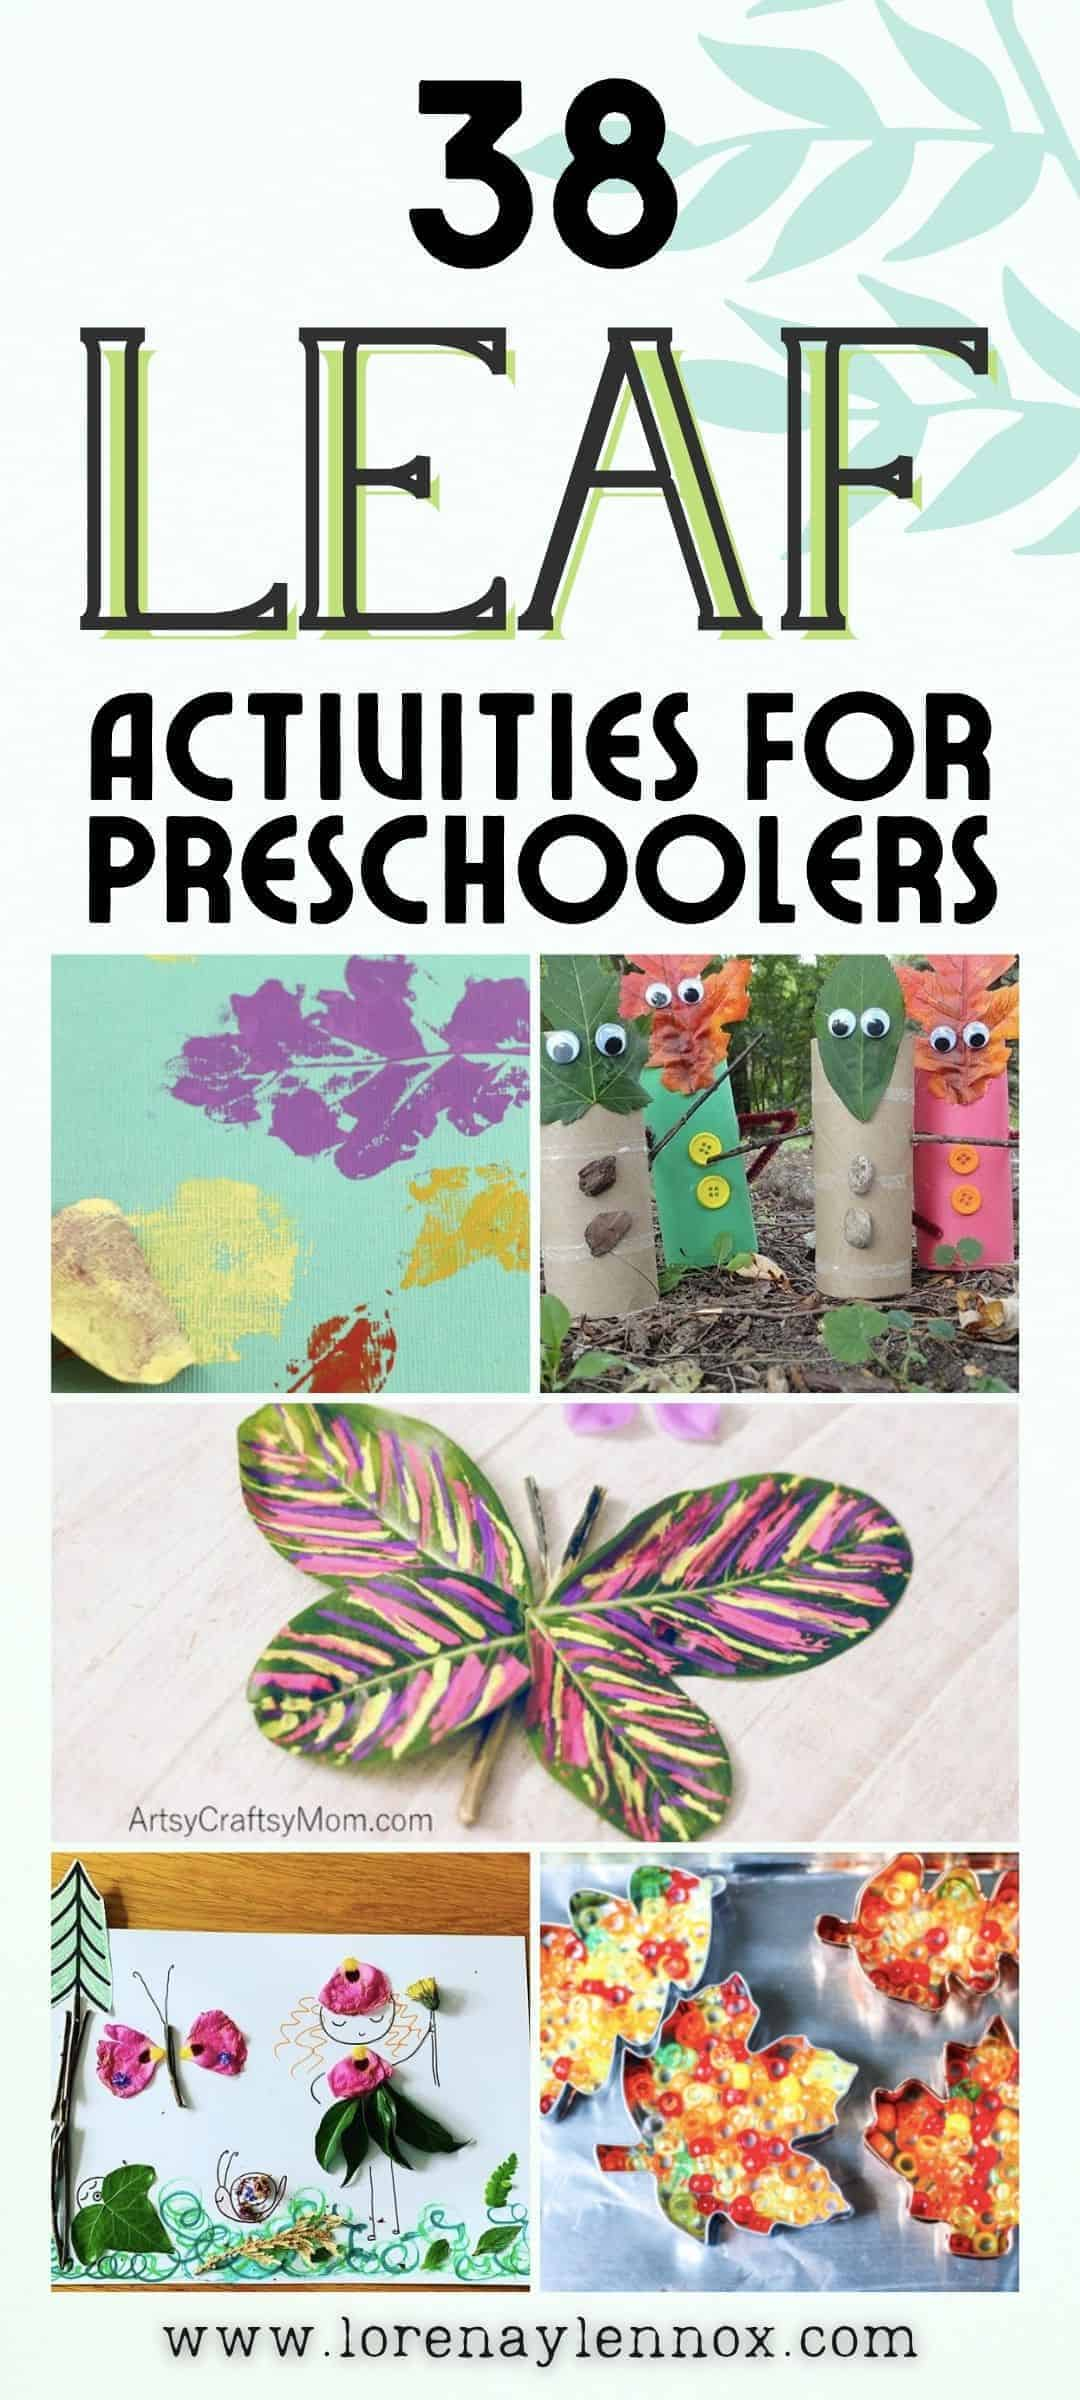 37 fun-filled autumn leaf activities to get your toddlers and preschoolers outdoors this fall!